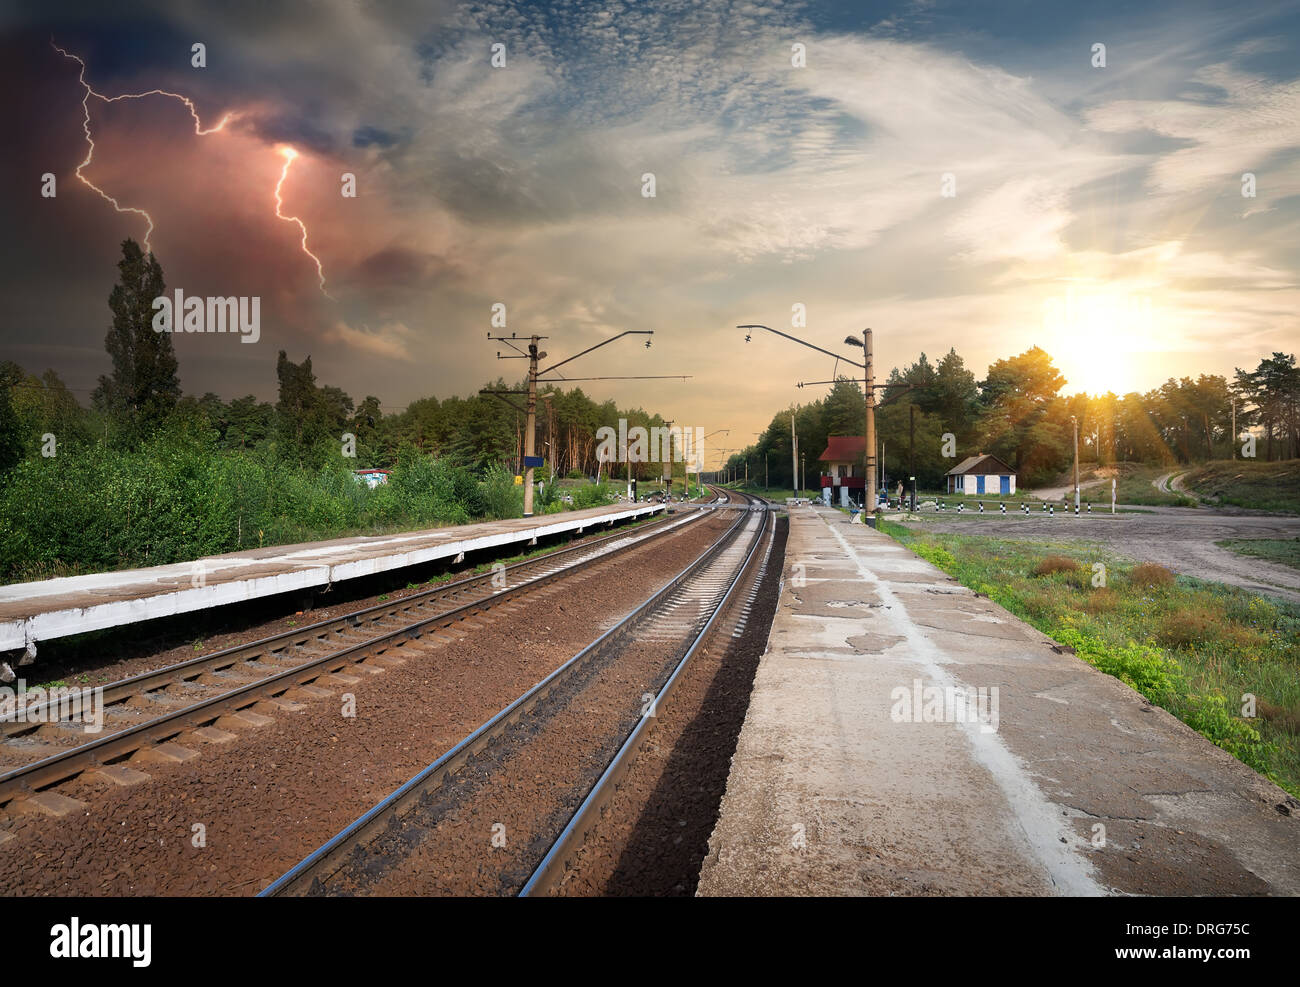 Bad weather and storm clouds over railroad - Stock Image